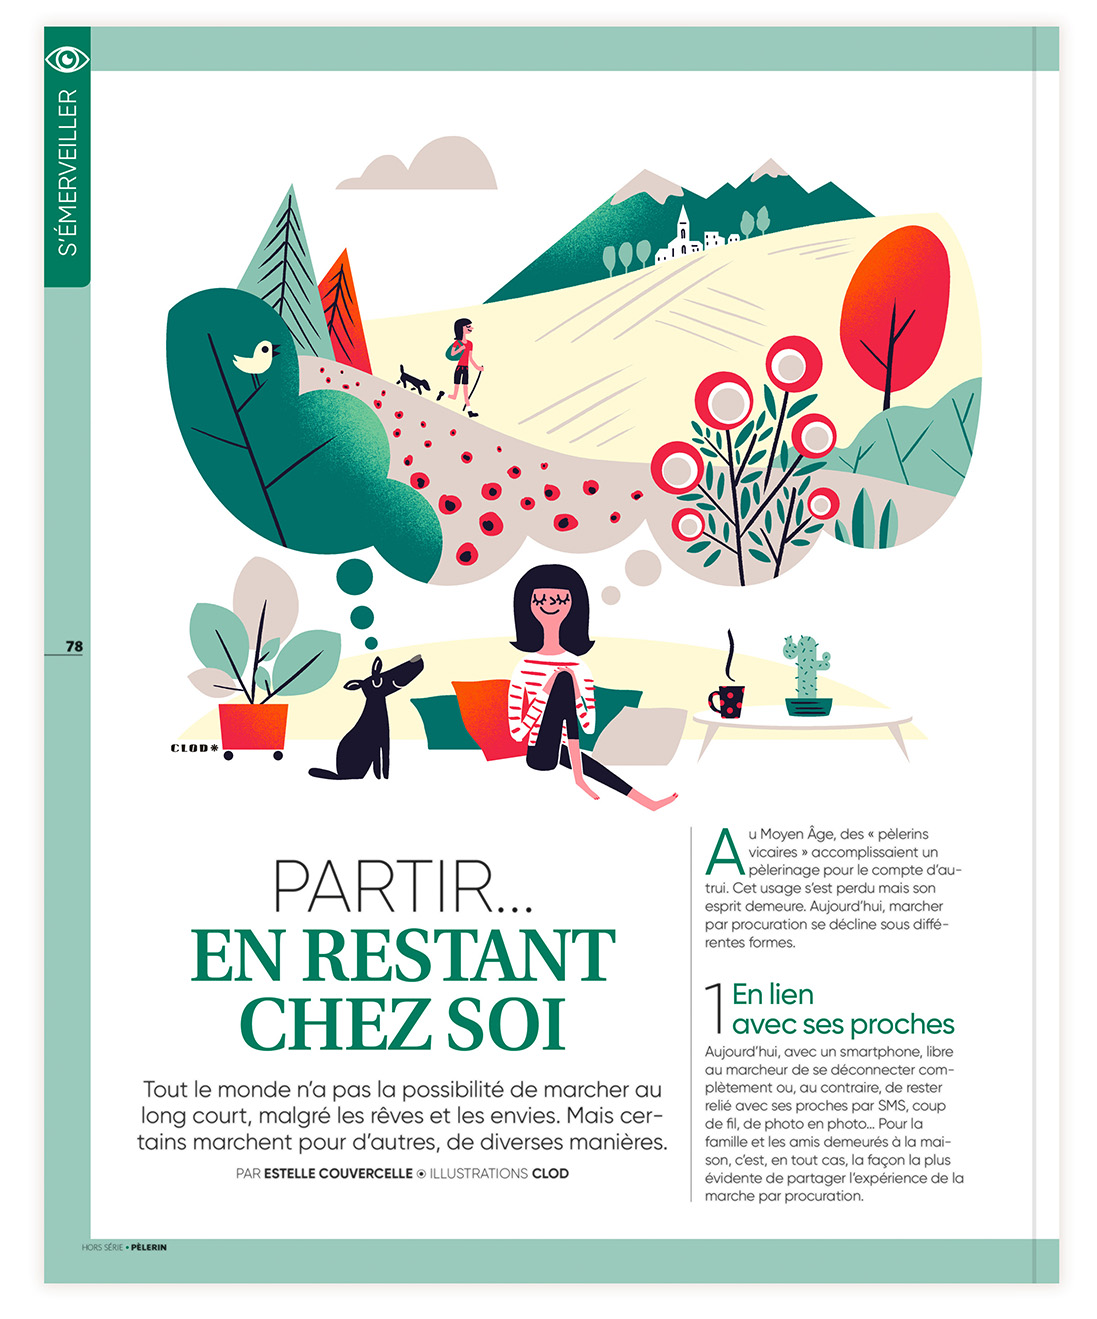 Clod illustration le Pèlerin magazine article sur la marche